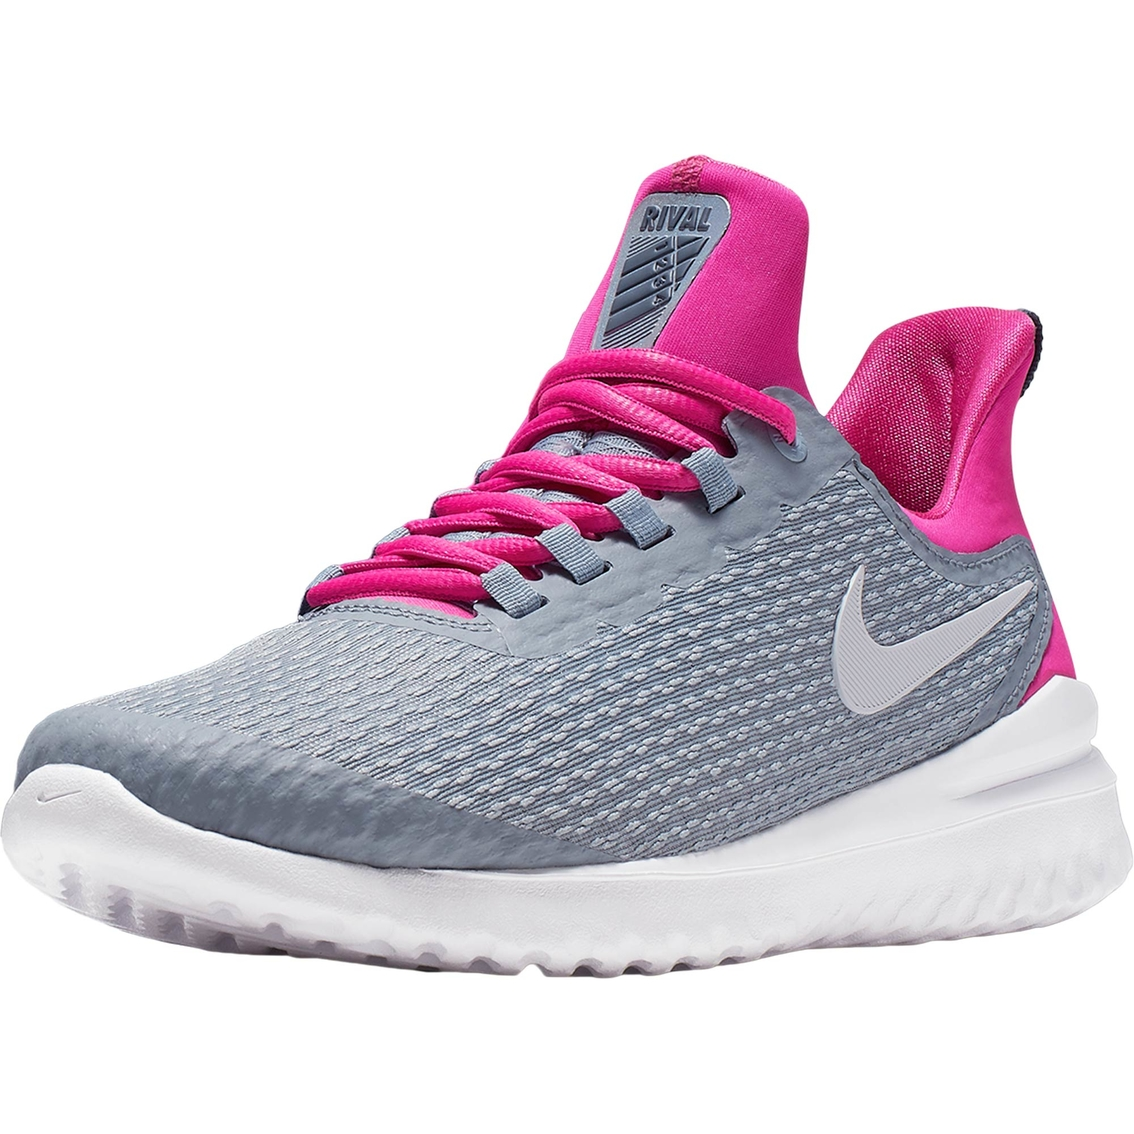 8b0cbed06efee Nike Women's Renew Rival Running Shoes   Running   Back To School ...